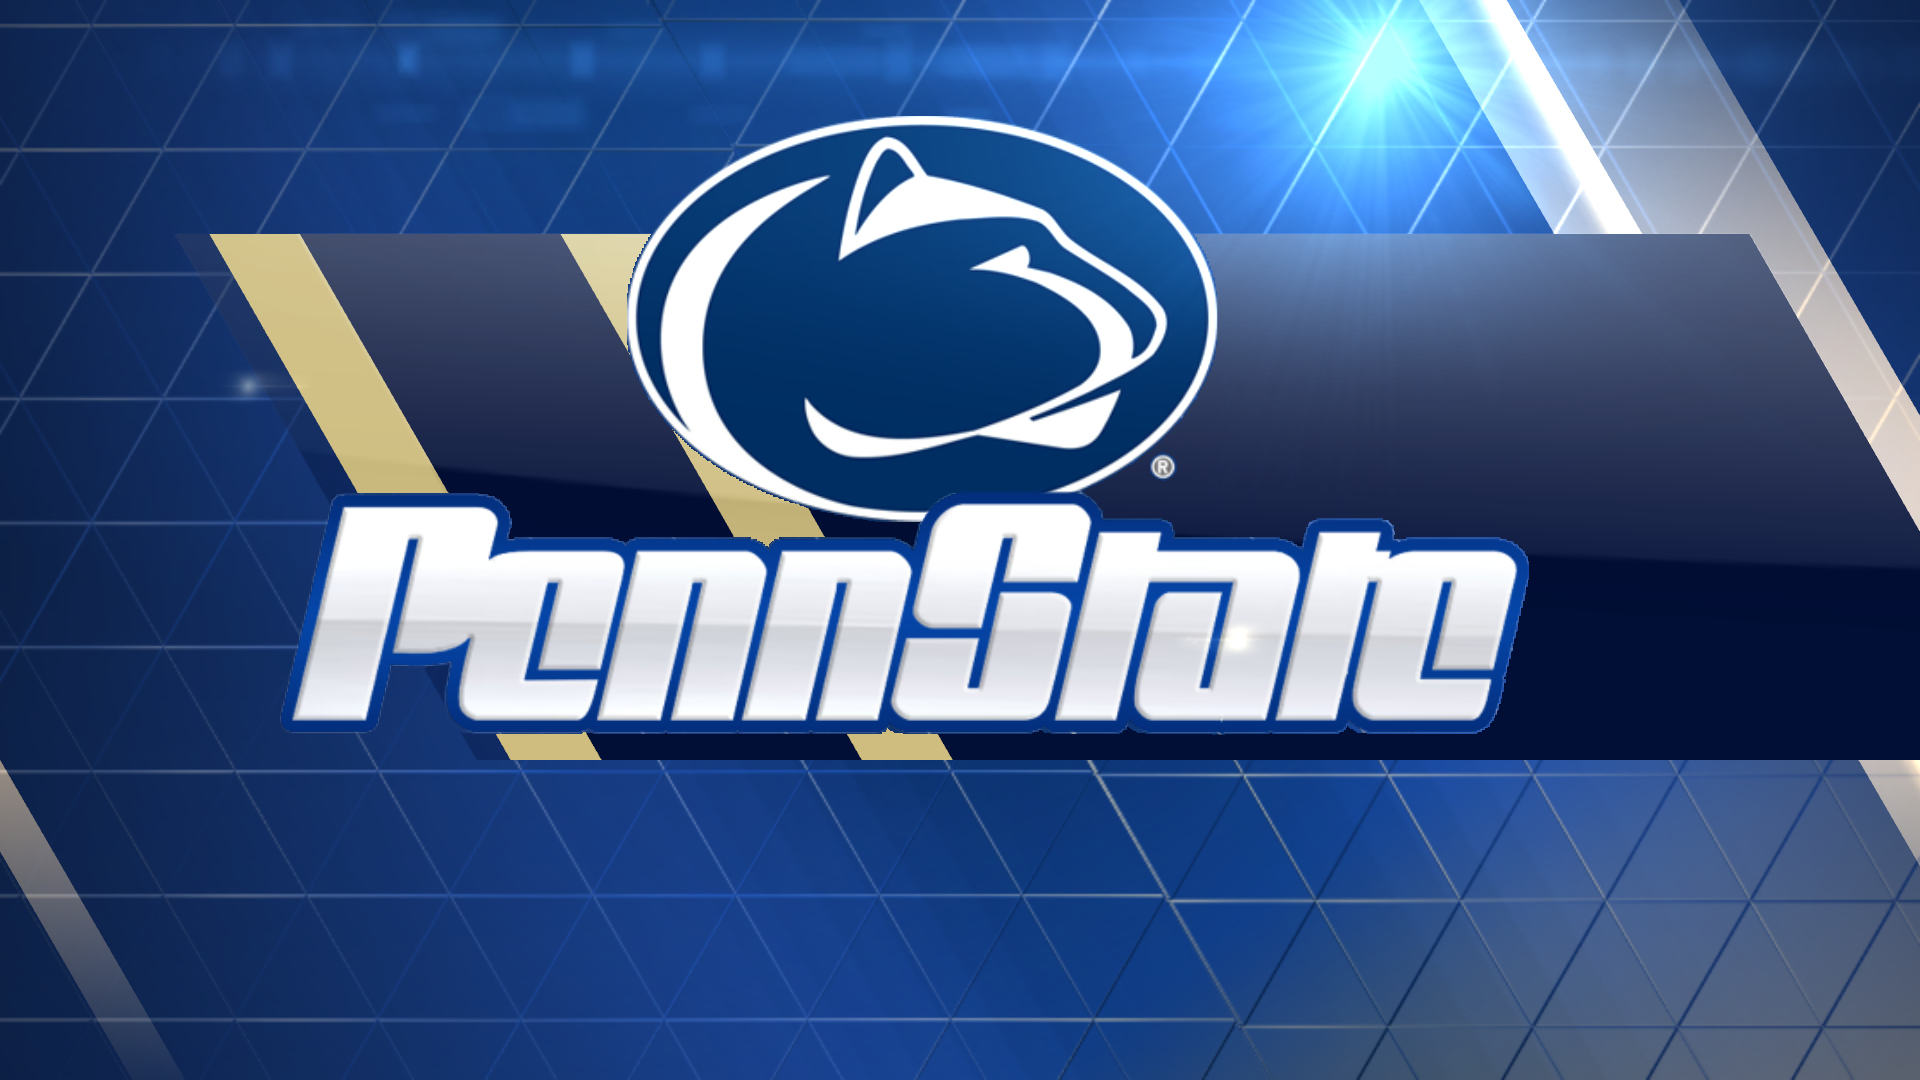 Penn State Wallpaper – Your Best Friend in College